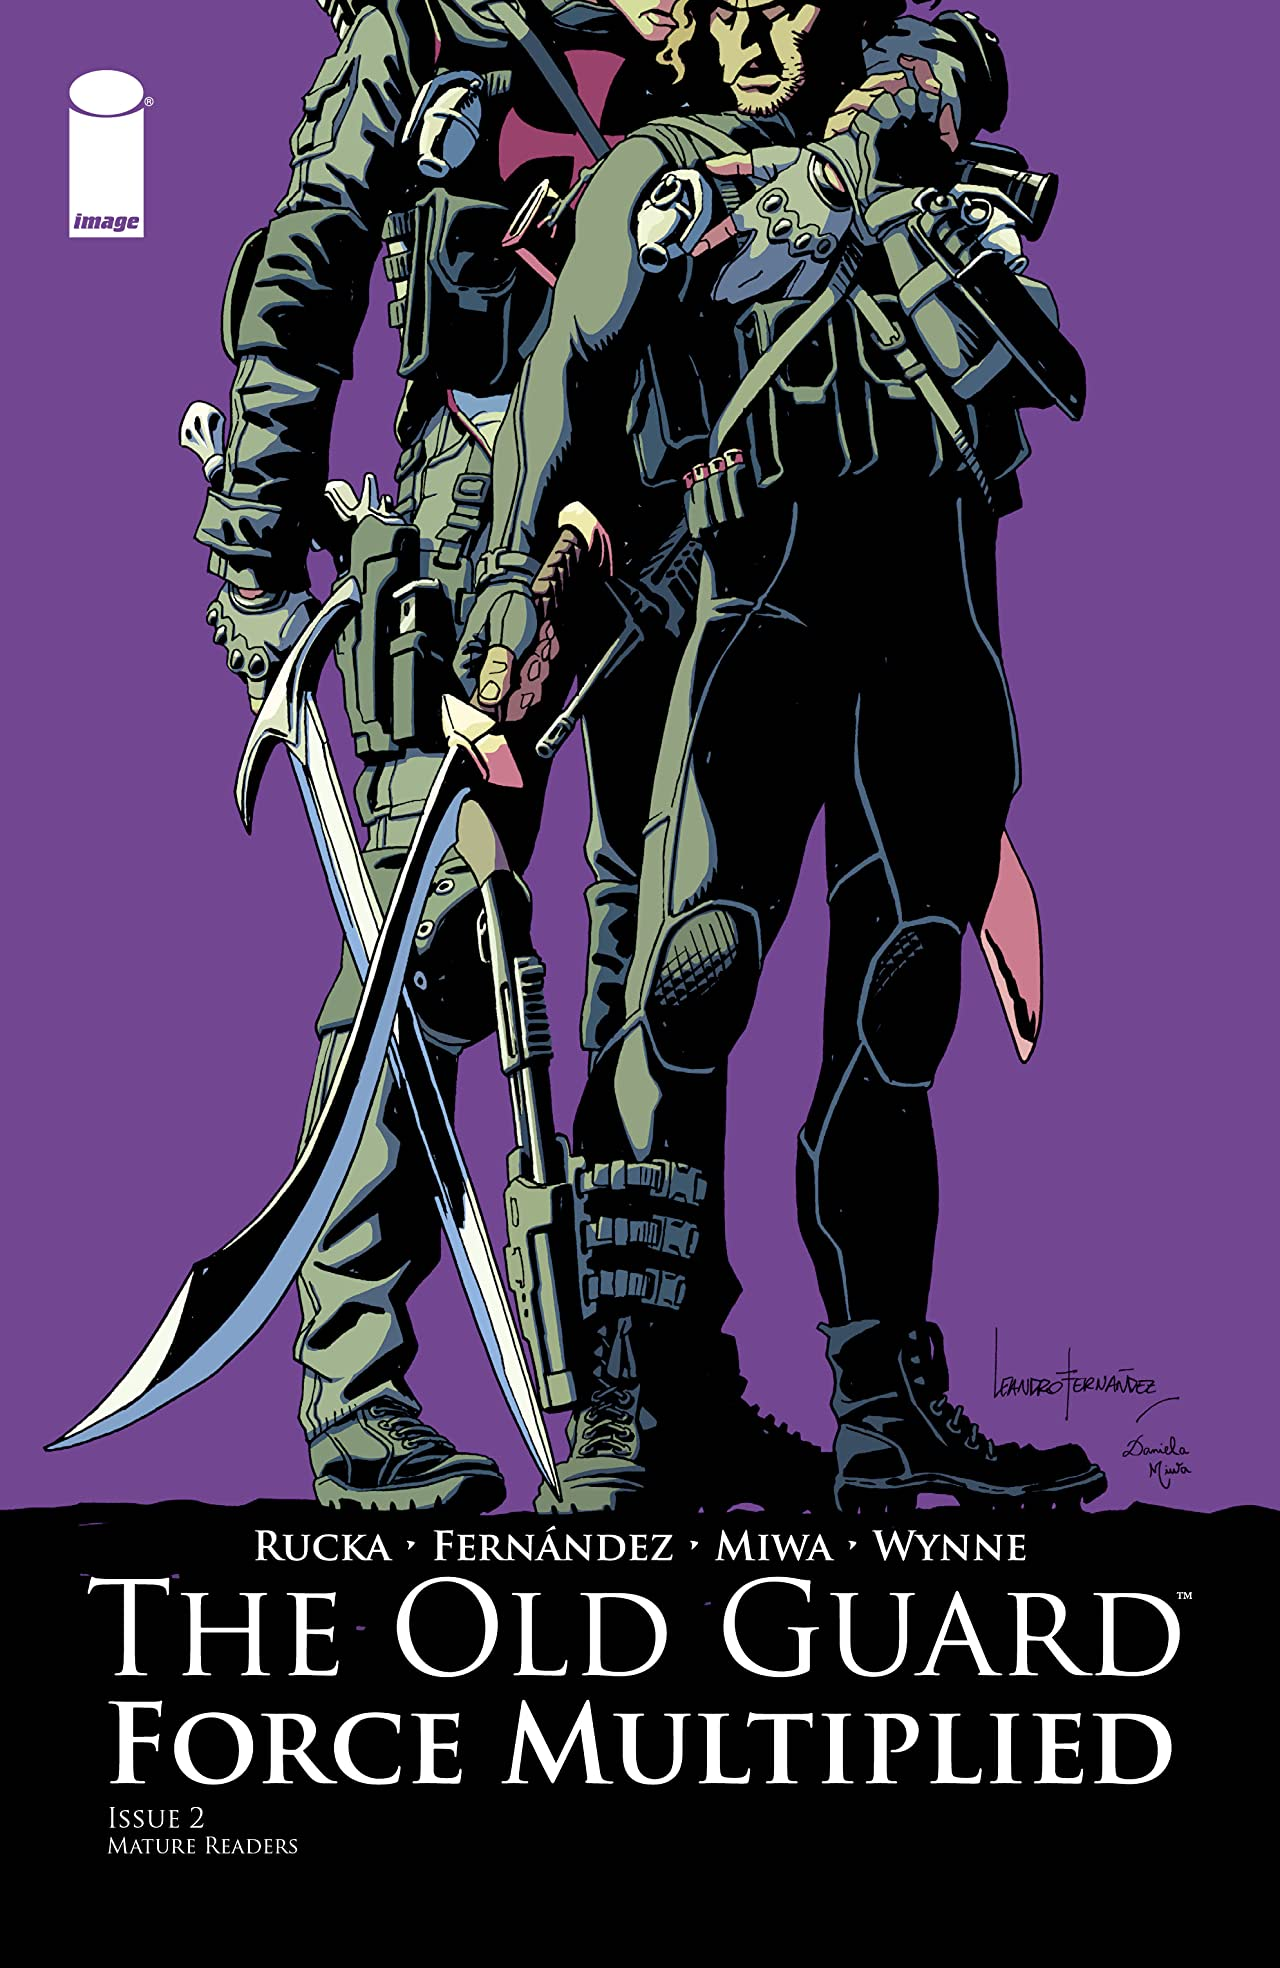 The Old Guard: Force Multiplied No.2